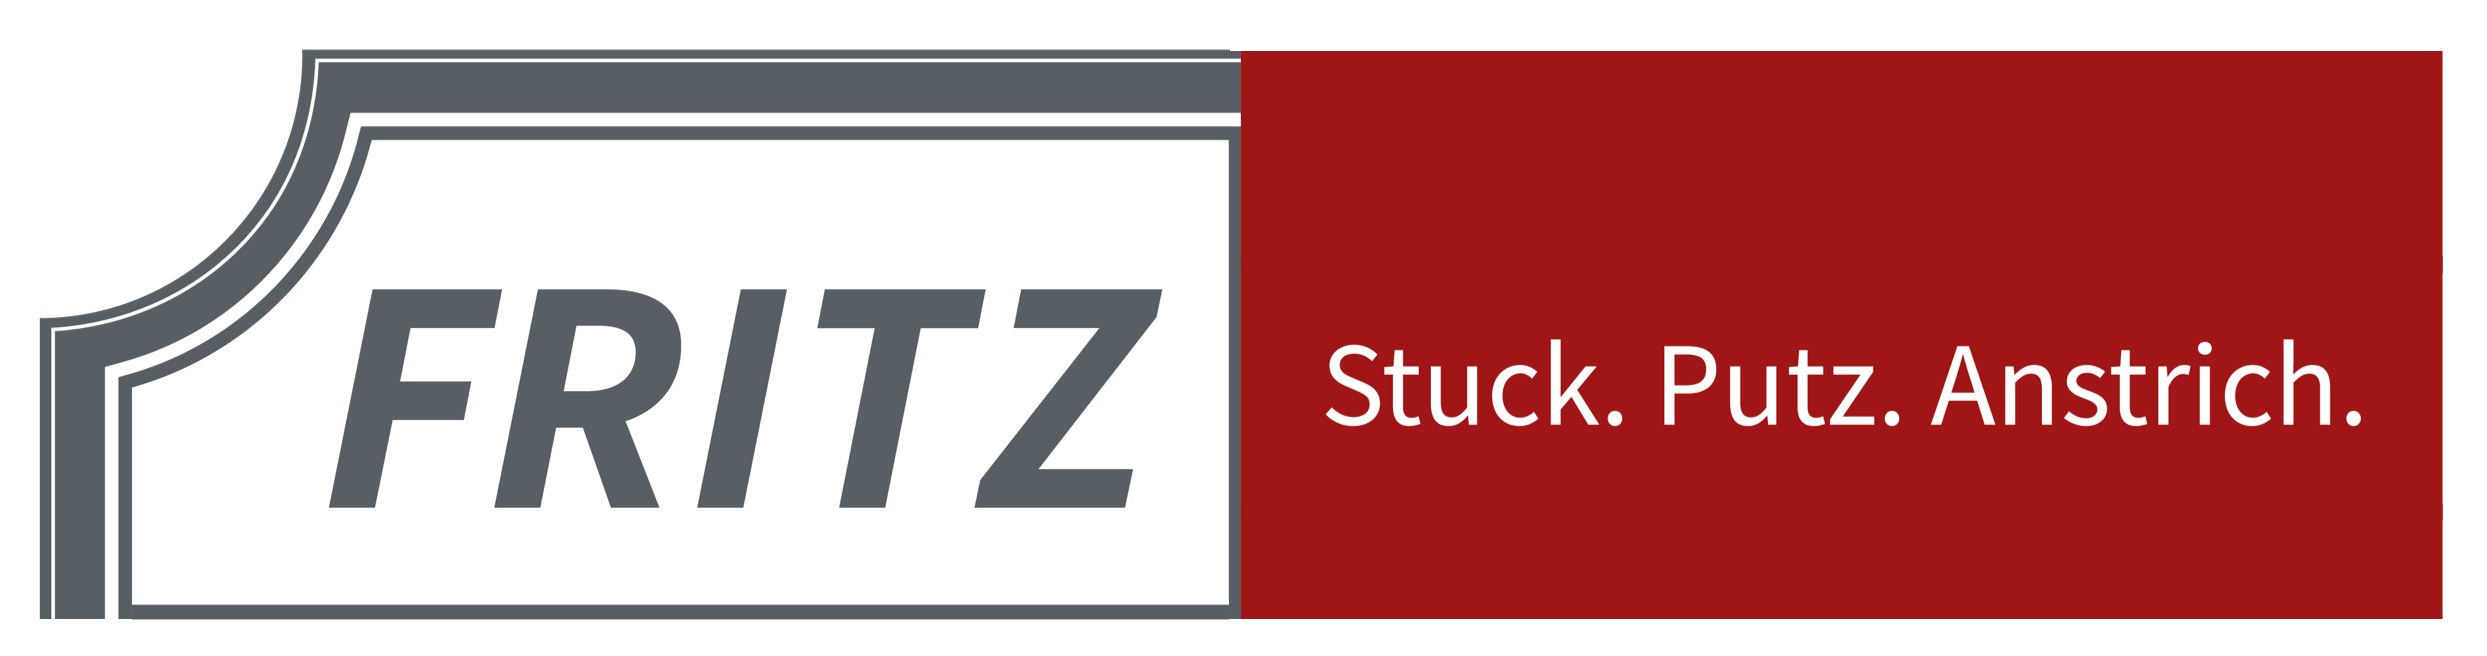 Fritz Stuck. Putz. Anstrich